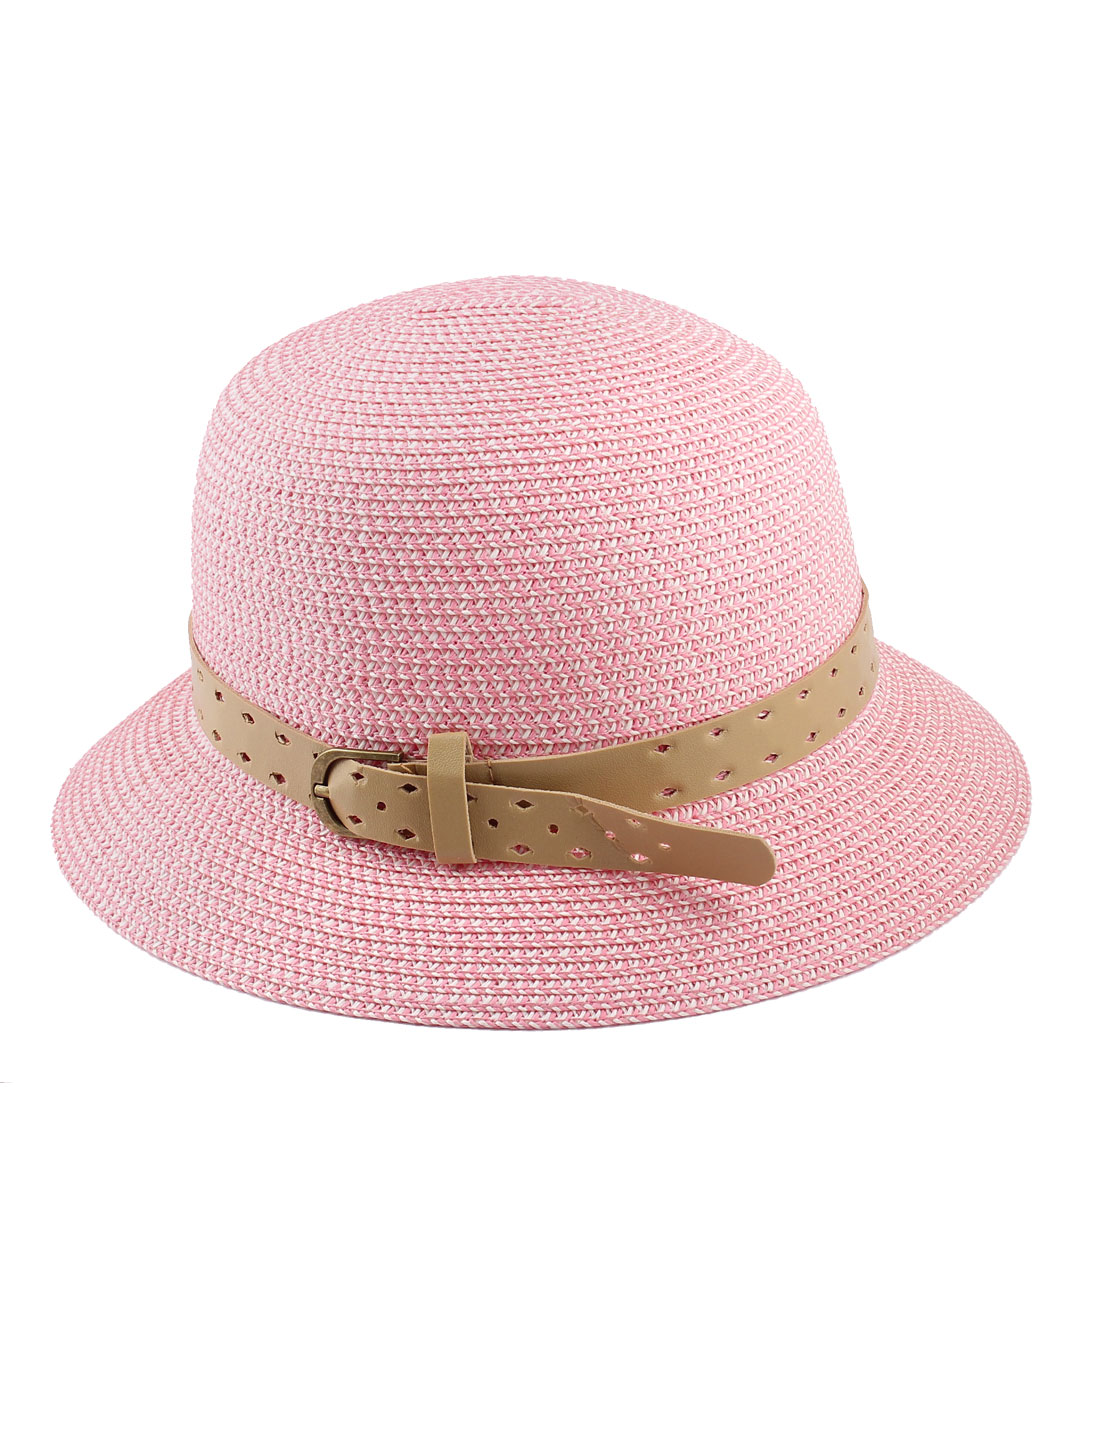 Lady Single Prong Buckle Adjustable Perforated Faux Feather Band Decor 10cm Depth Sun Visor Chapeau Cloche Bowler Hat Pink